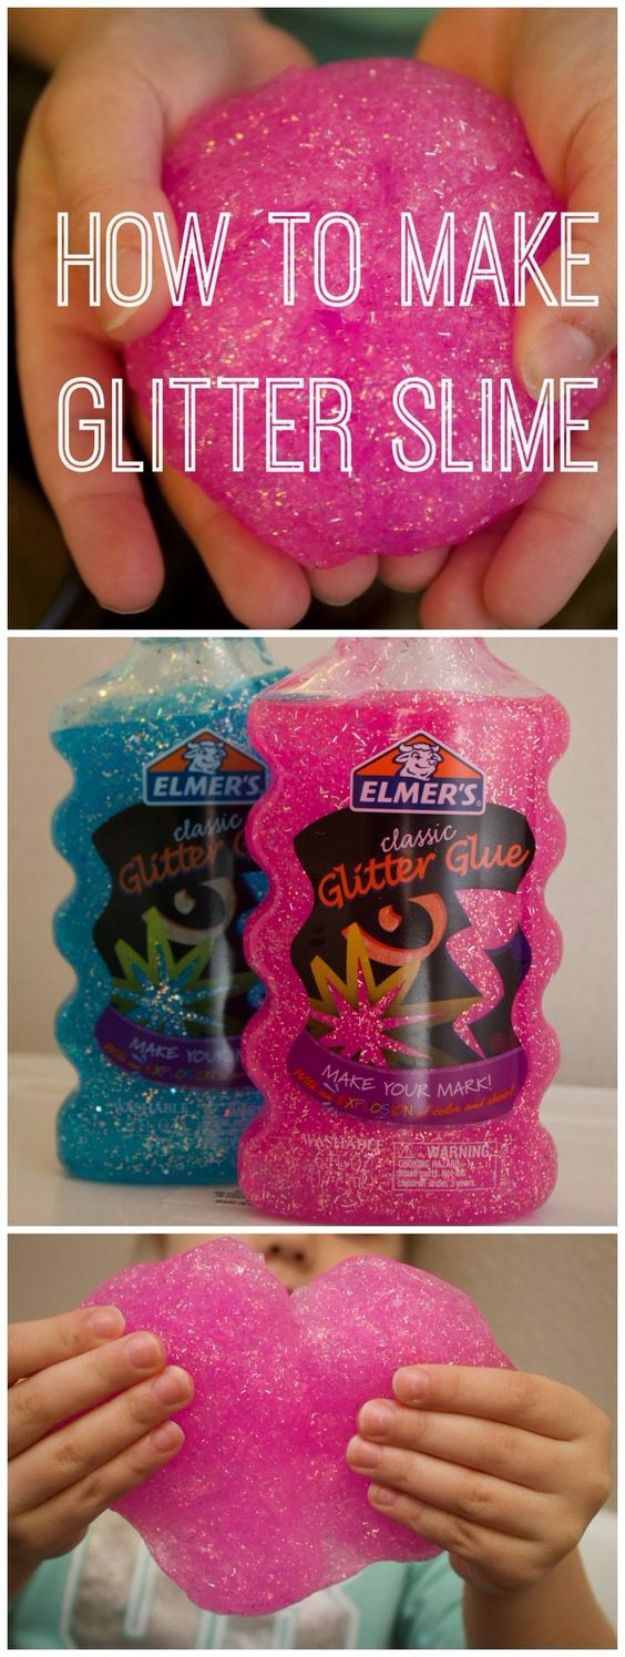 Crafts For Kids To Make At Home - 3-Ingredient Glitter Slime - Cheap DIY Projects and Fun Craft Ideas for Children - Cute Paper Crafts, Fall and Winter Fun, Things For Toddlers, Babies, Boys and Girls to Make At Home http://diyjoy.com/diy-ideas-for-kids-to-make